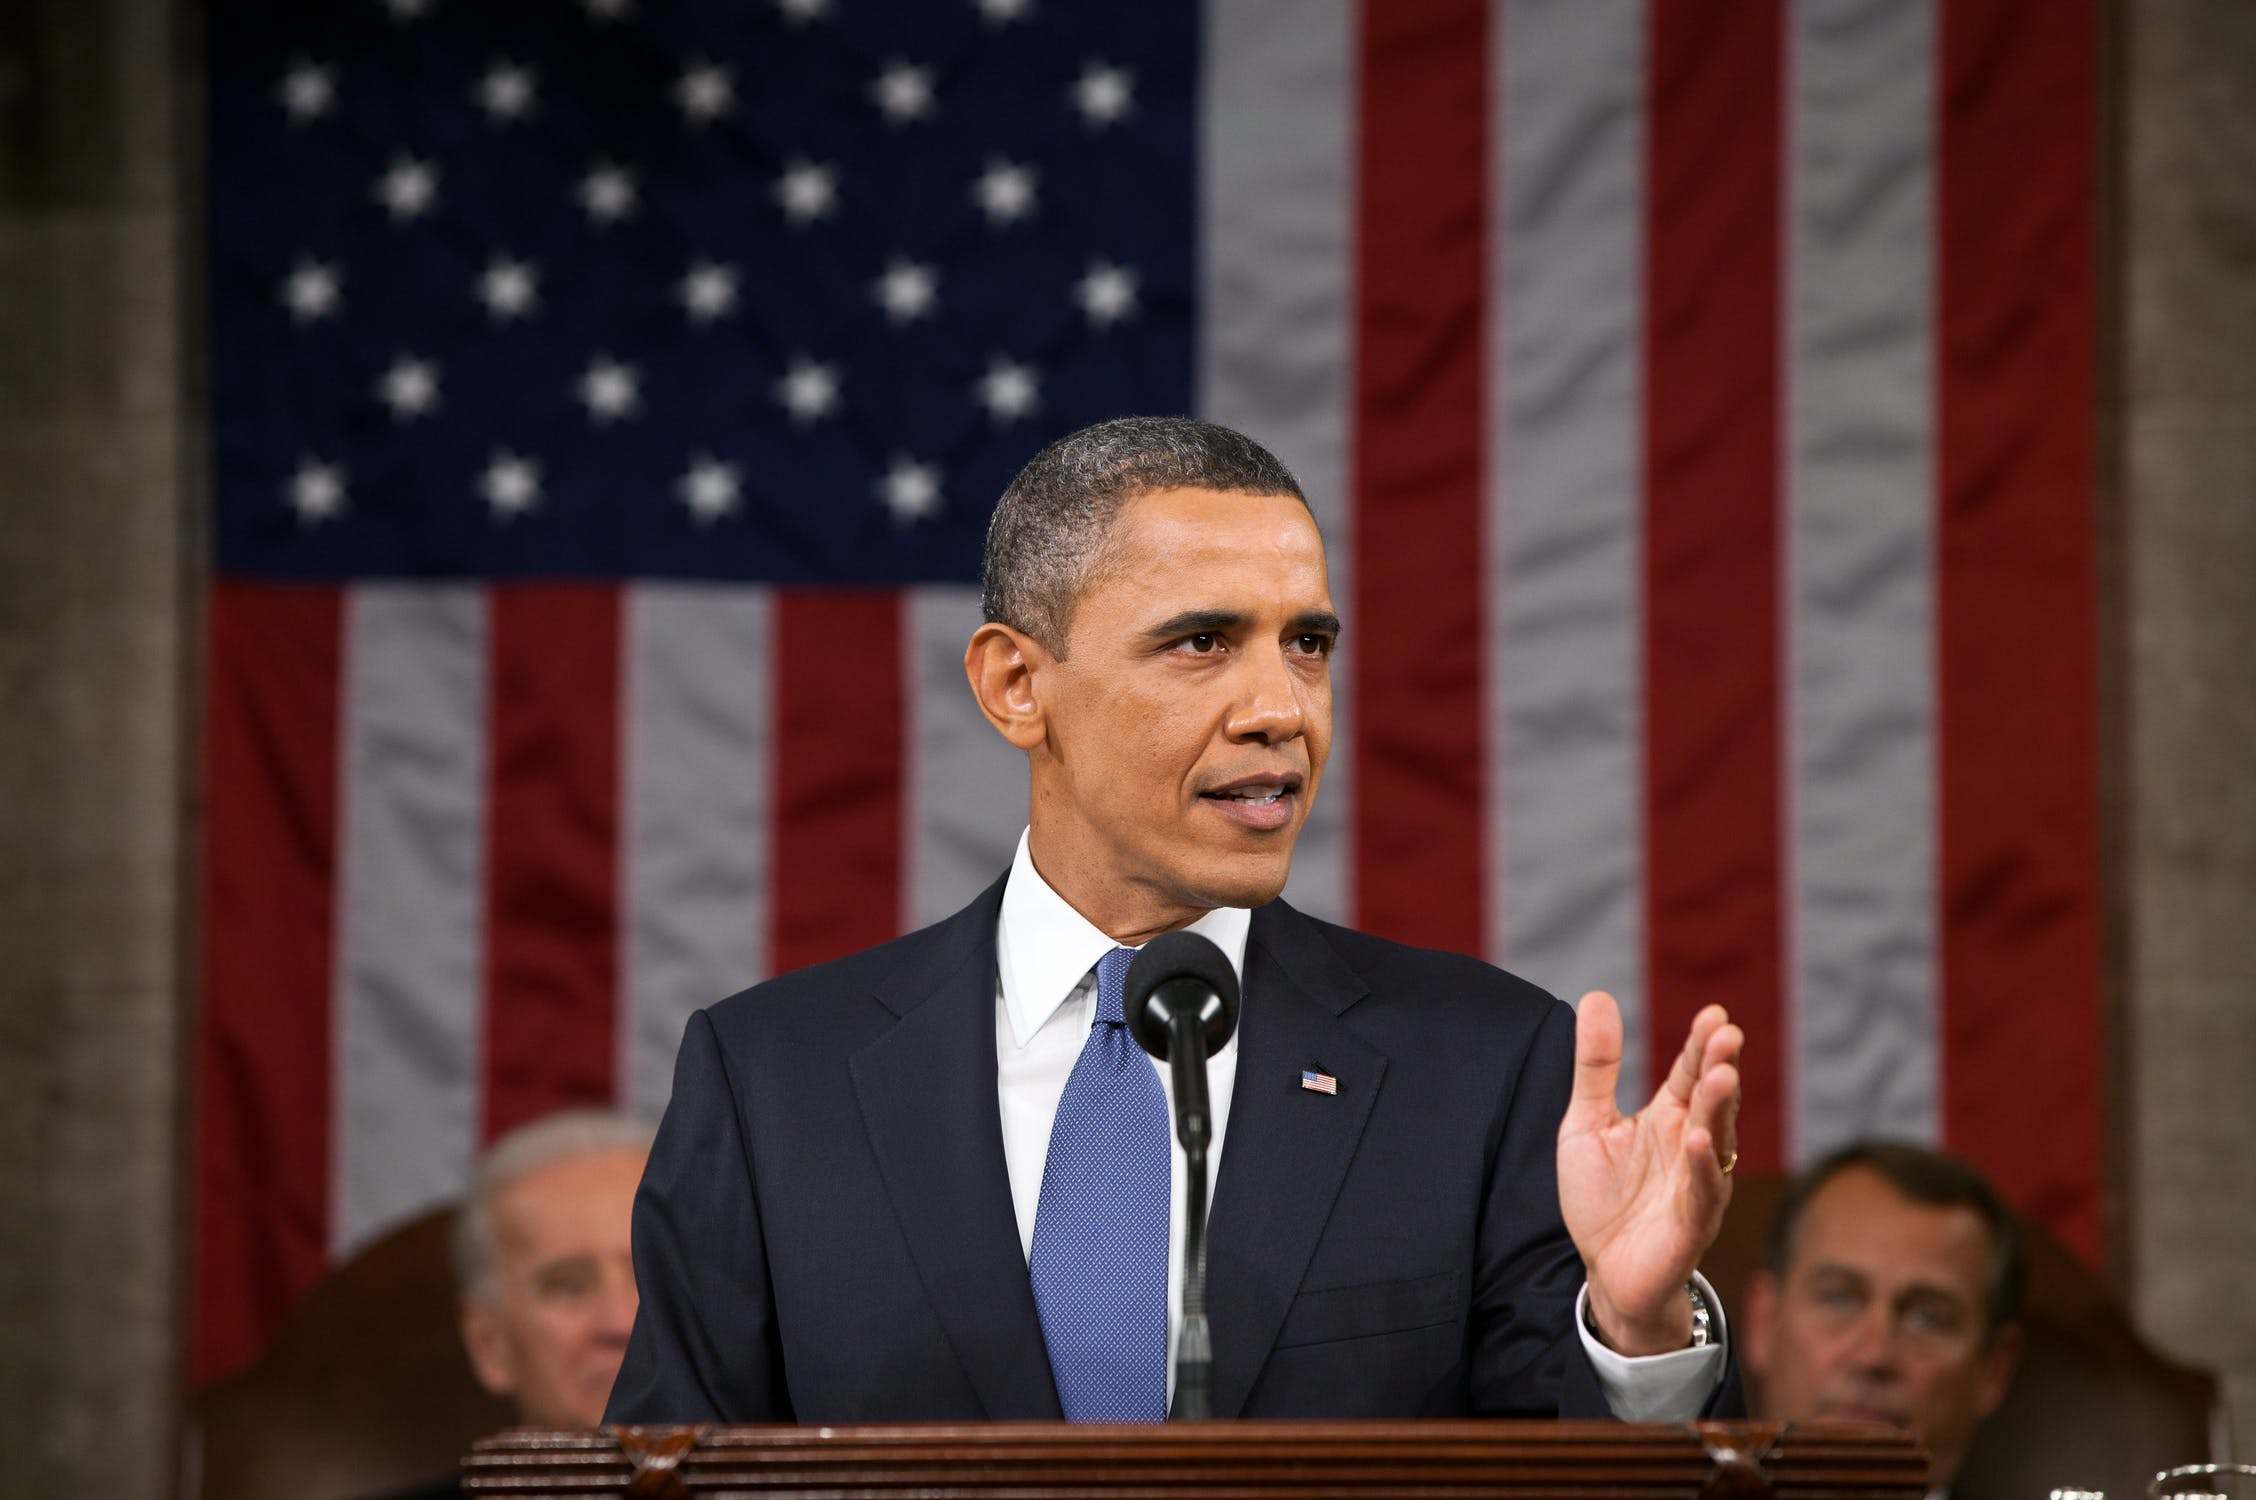 Obama's suspension of the oil ban was a way to solve the mismatches between domestic oil quality and domestic capacity to handle volumes of oil.